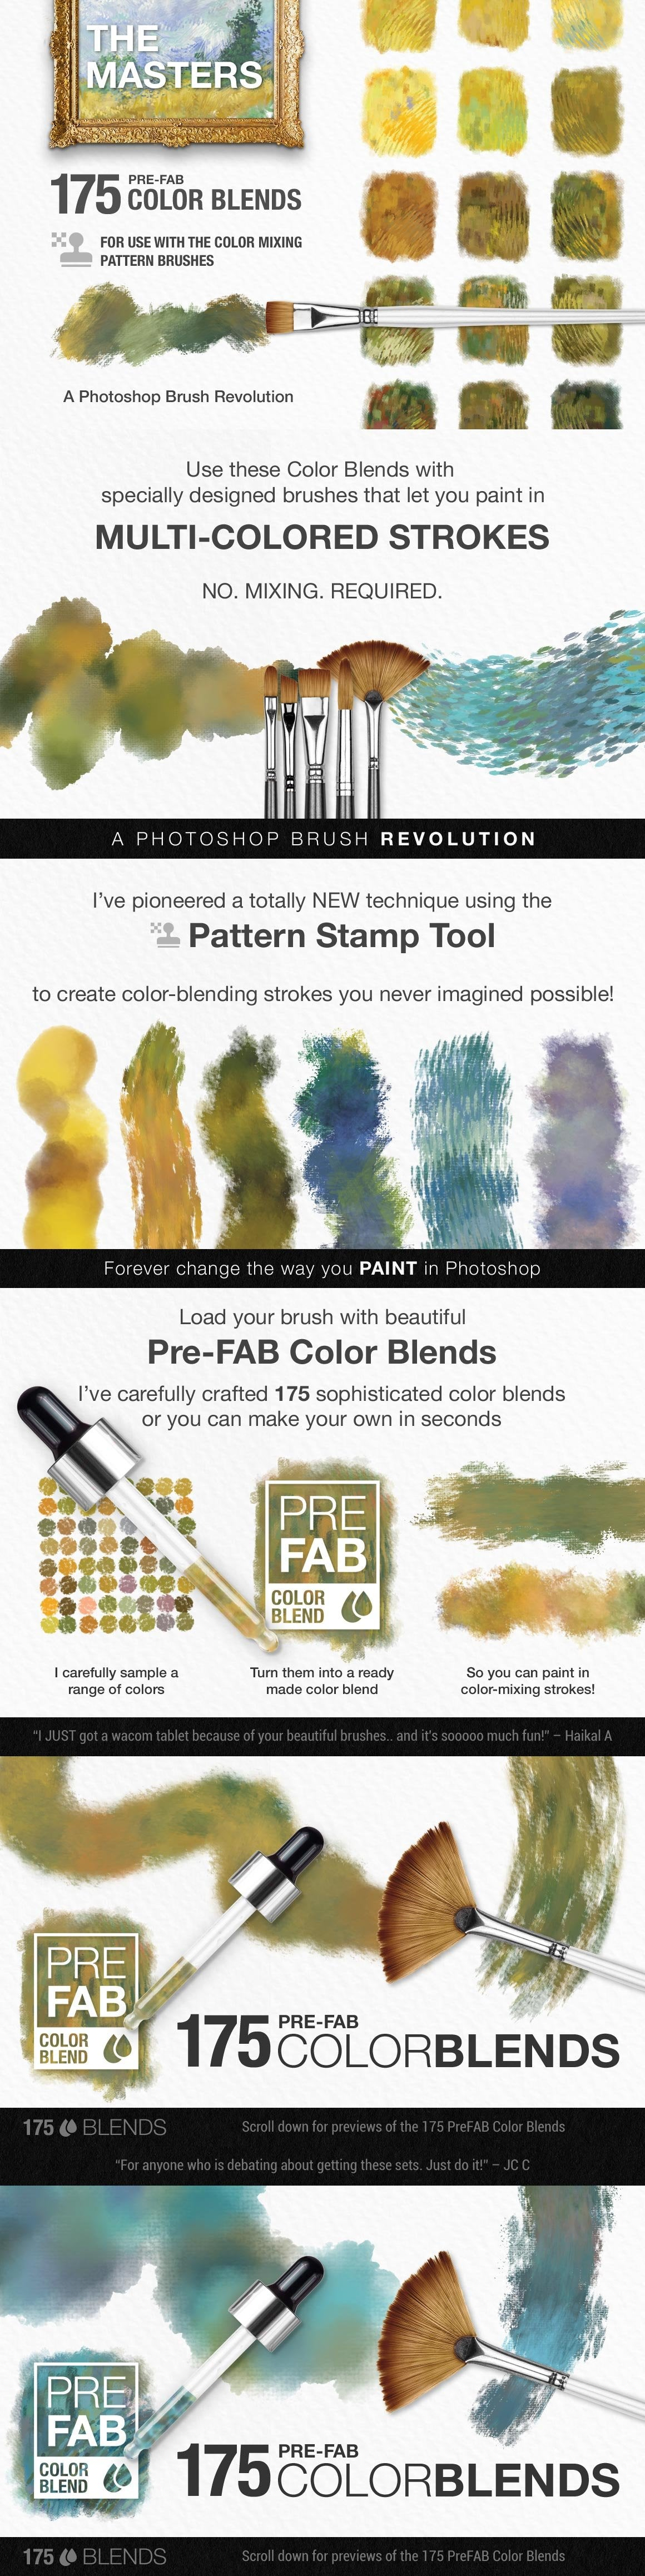 Impressionist Masters Color Blends Palette Collection & Photoshop Brush Sampler preview chart 3